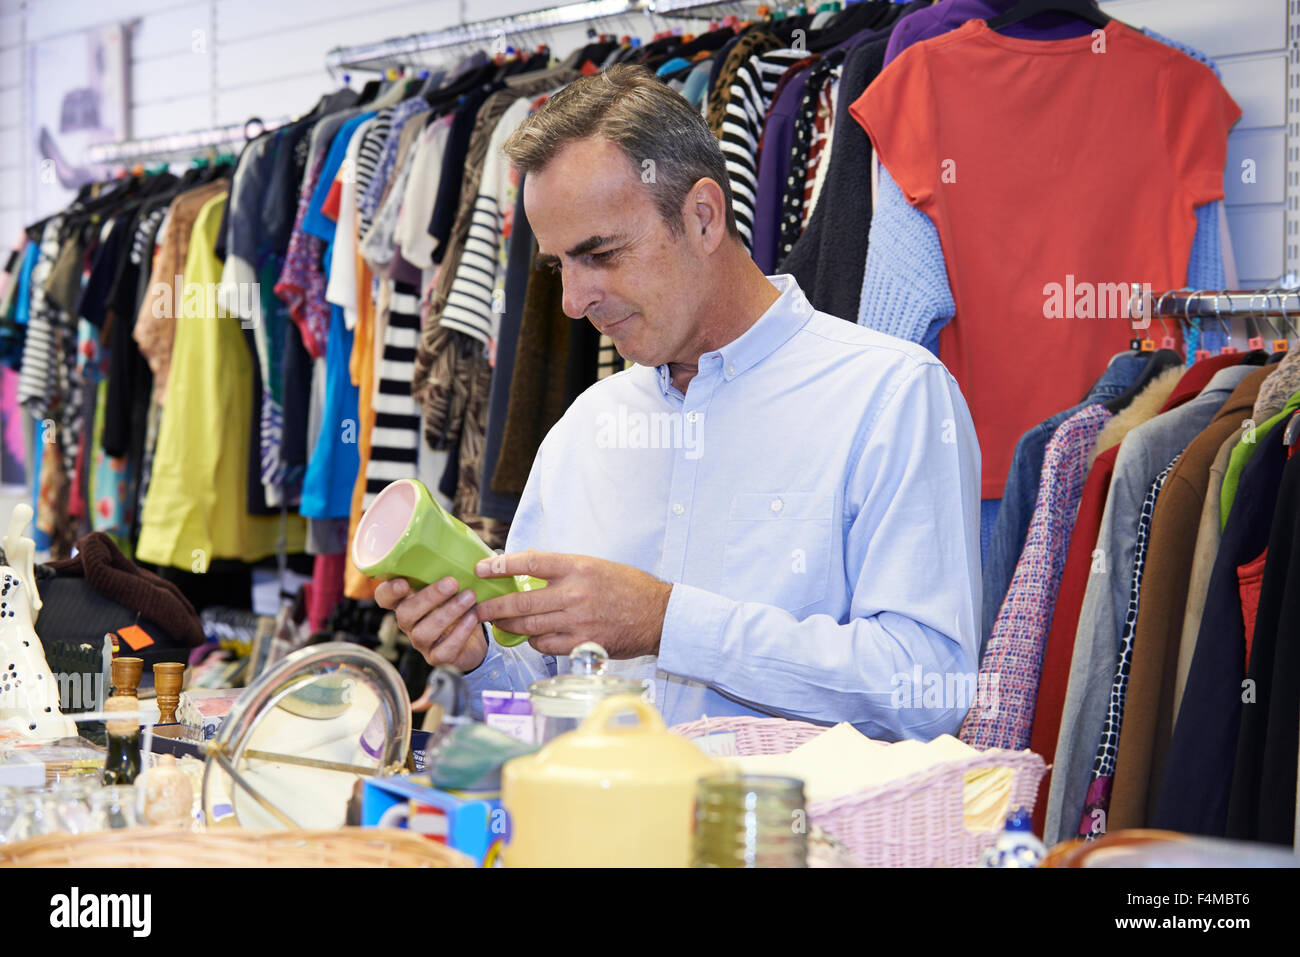 Male Shopper In Thrift Store Looking At Ornaments - Stock Image